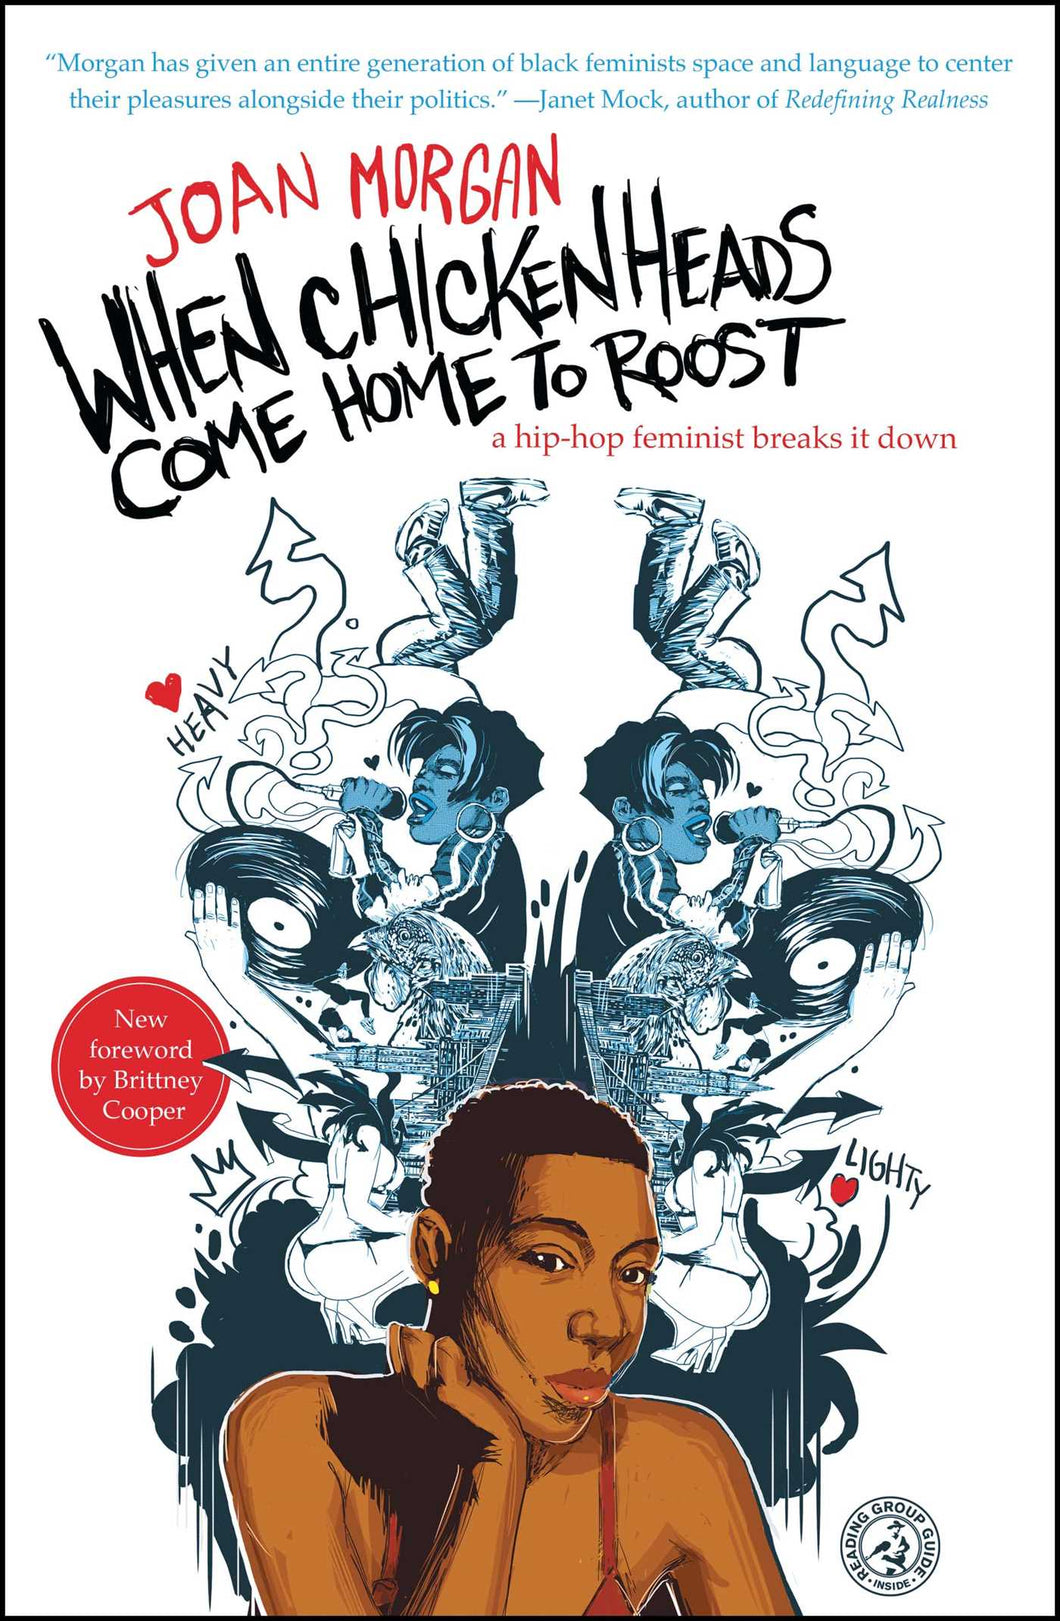 When Chickenheads Come Home to Roost: A Hip-Hop Feminist Breaks It Down by Joan Morgan